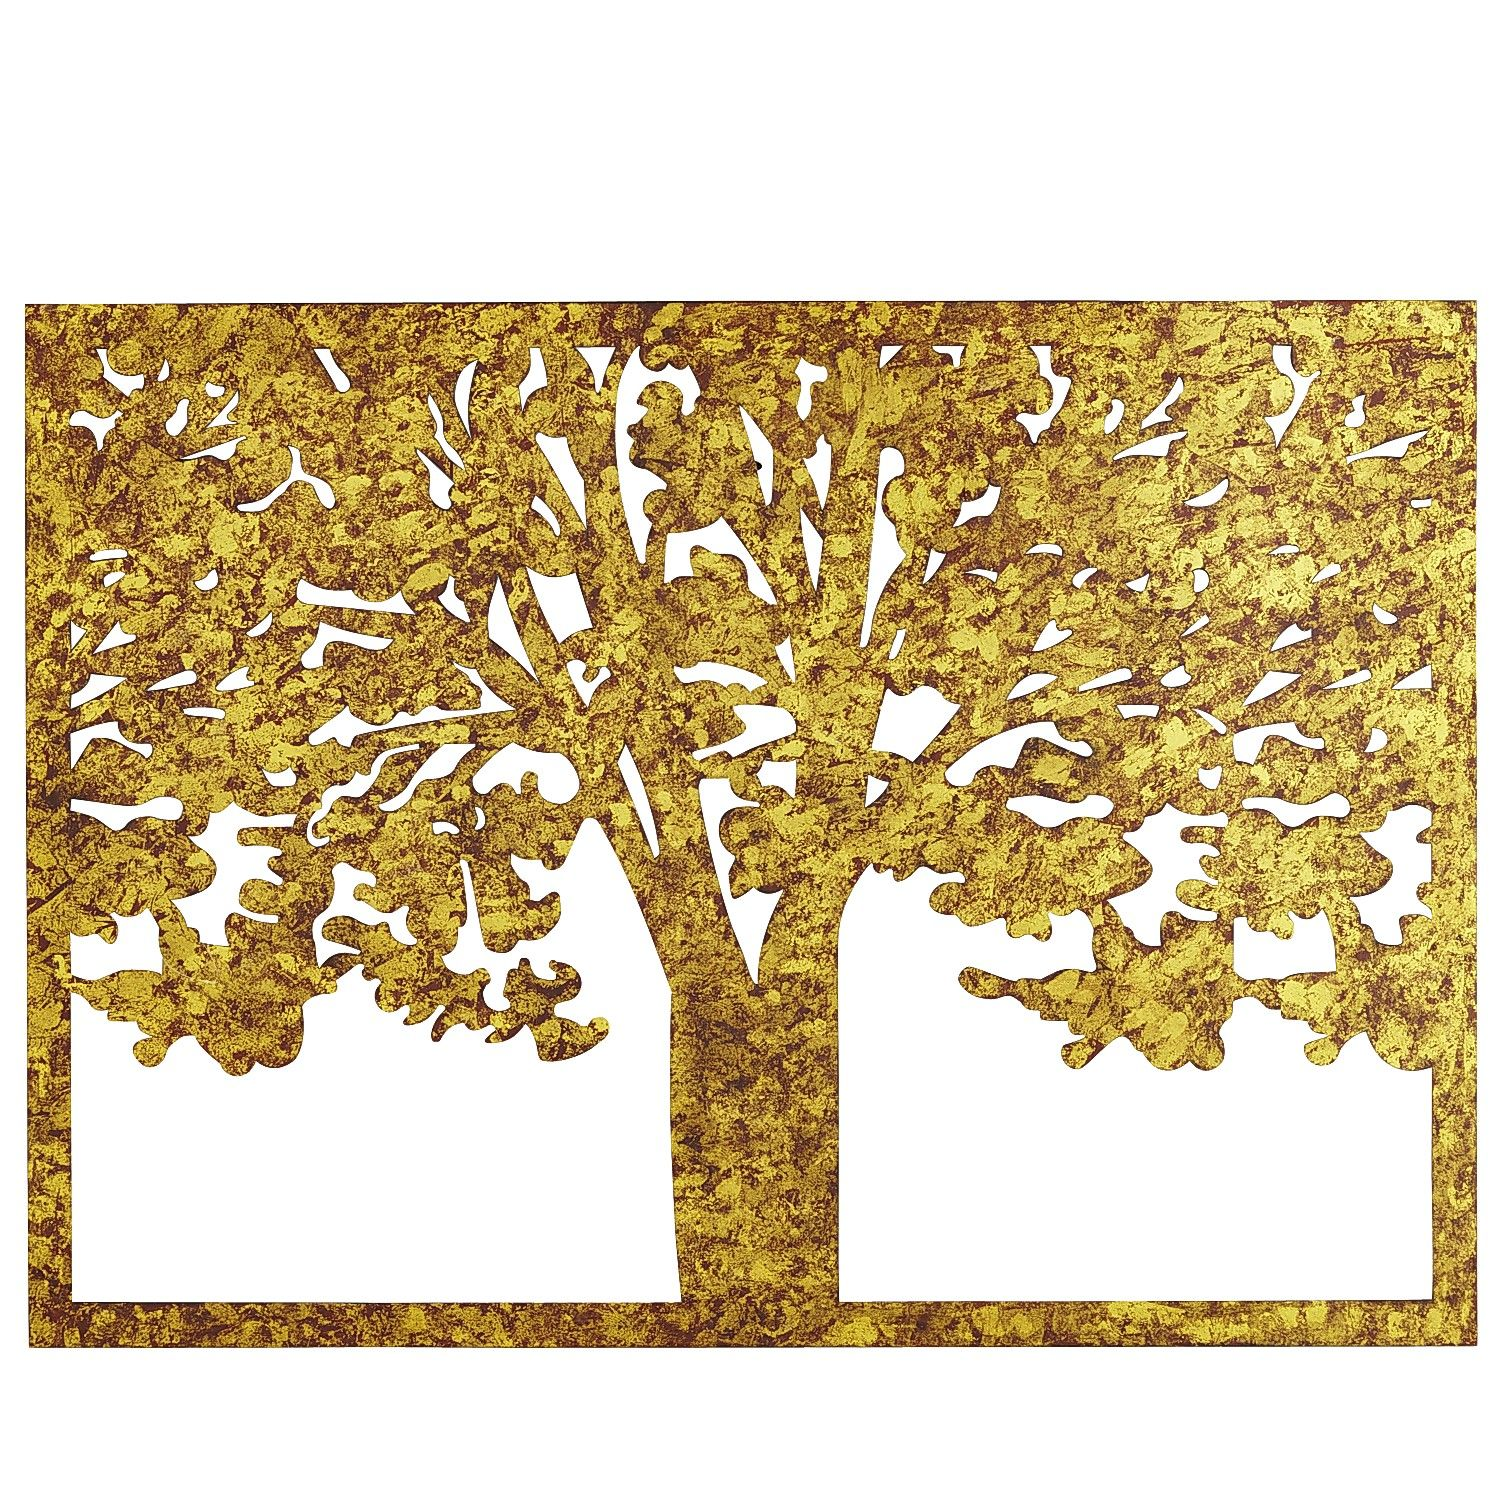 Etched Metal Tree Silhouette Wall Decor